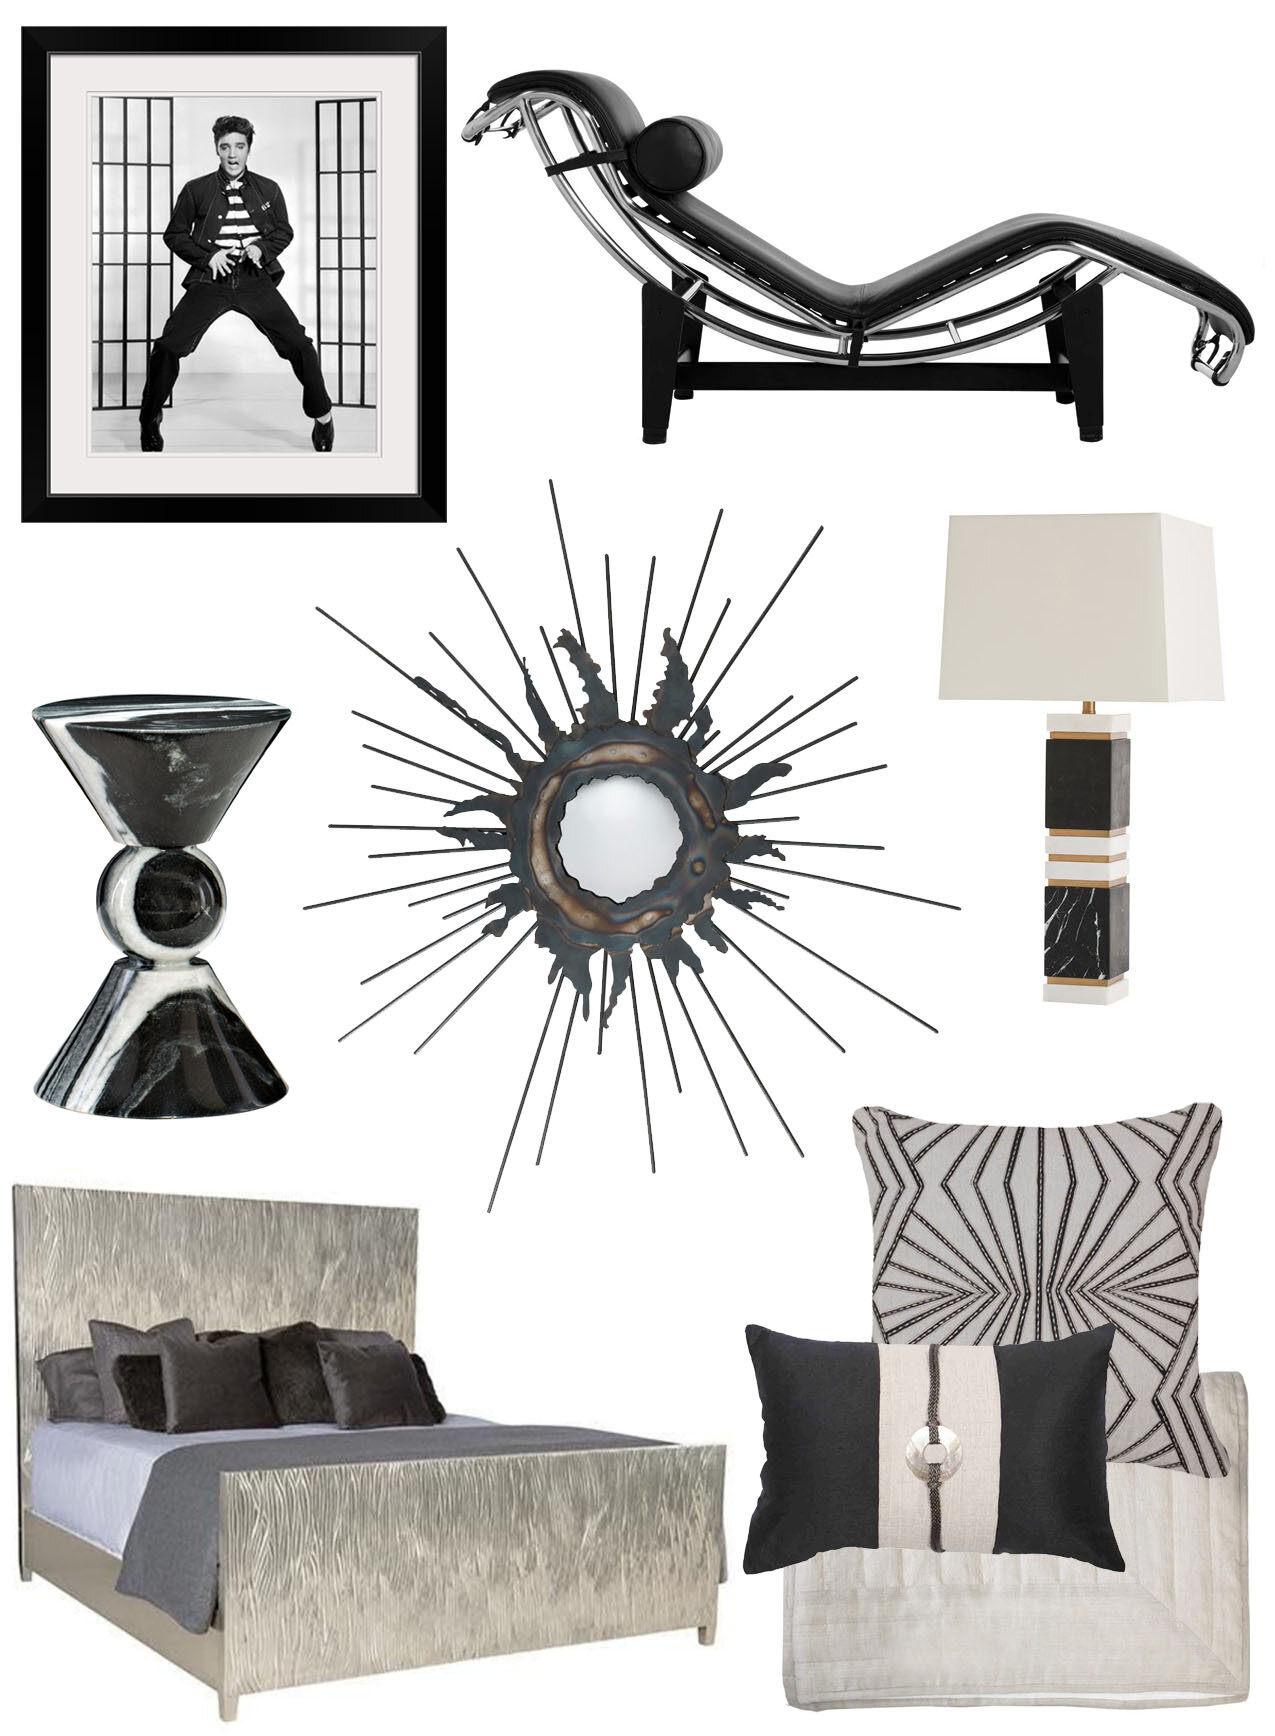 unless otherwise specified, all products shown can be purchased as part of your design with robin bond interiors